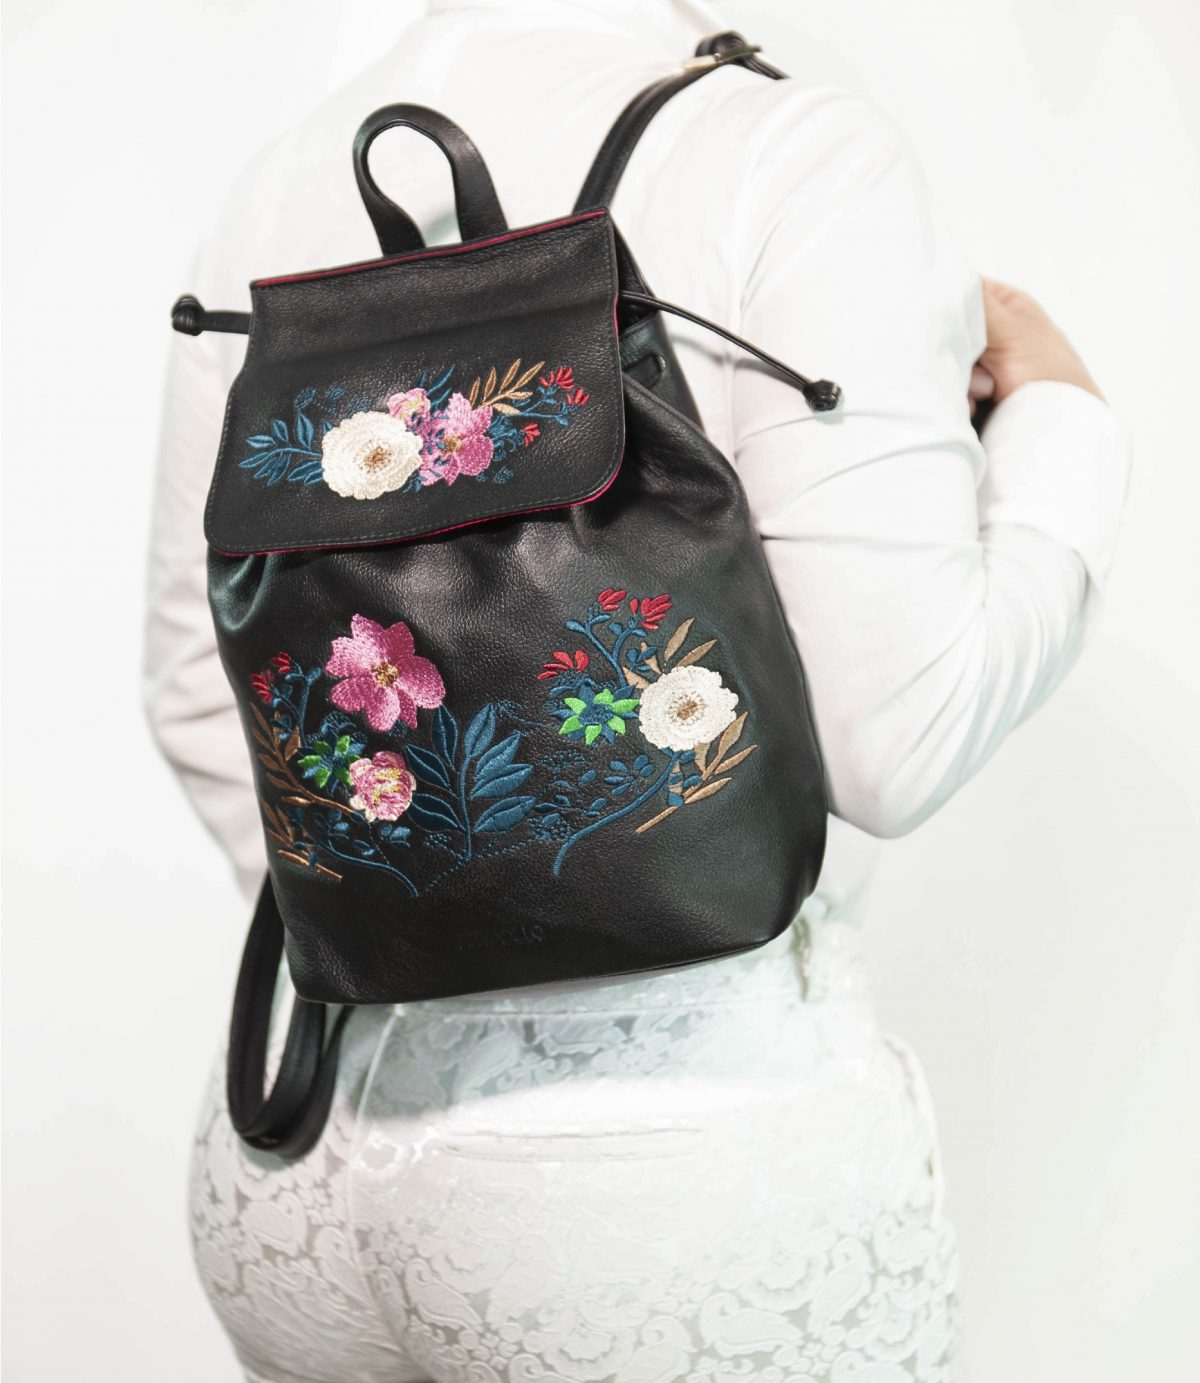 armadillo-leather-handbags-totes-wallets-clutches-backpack-small-leather-goods-accessories-office-travel-gifts-in-canada-black-backpack-embroidery-flowers